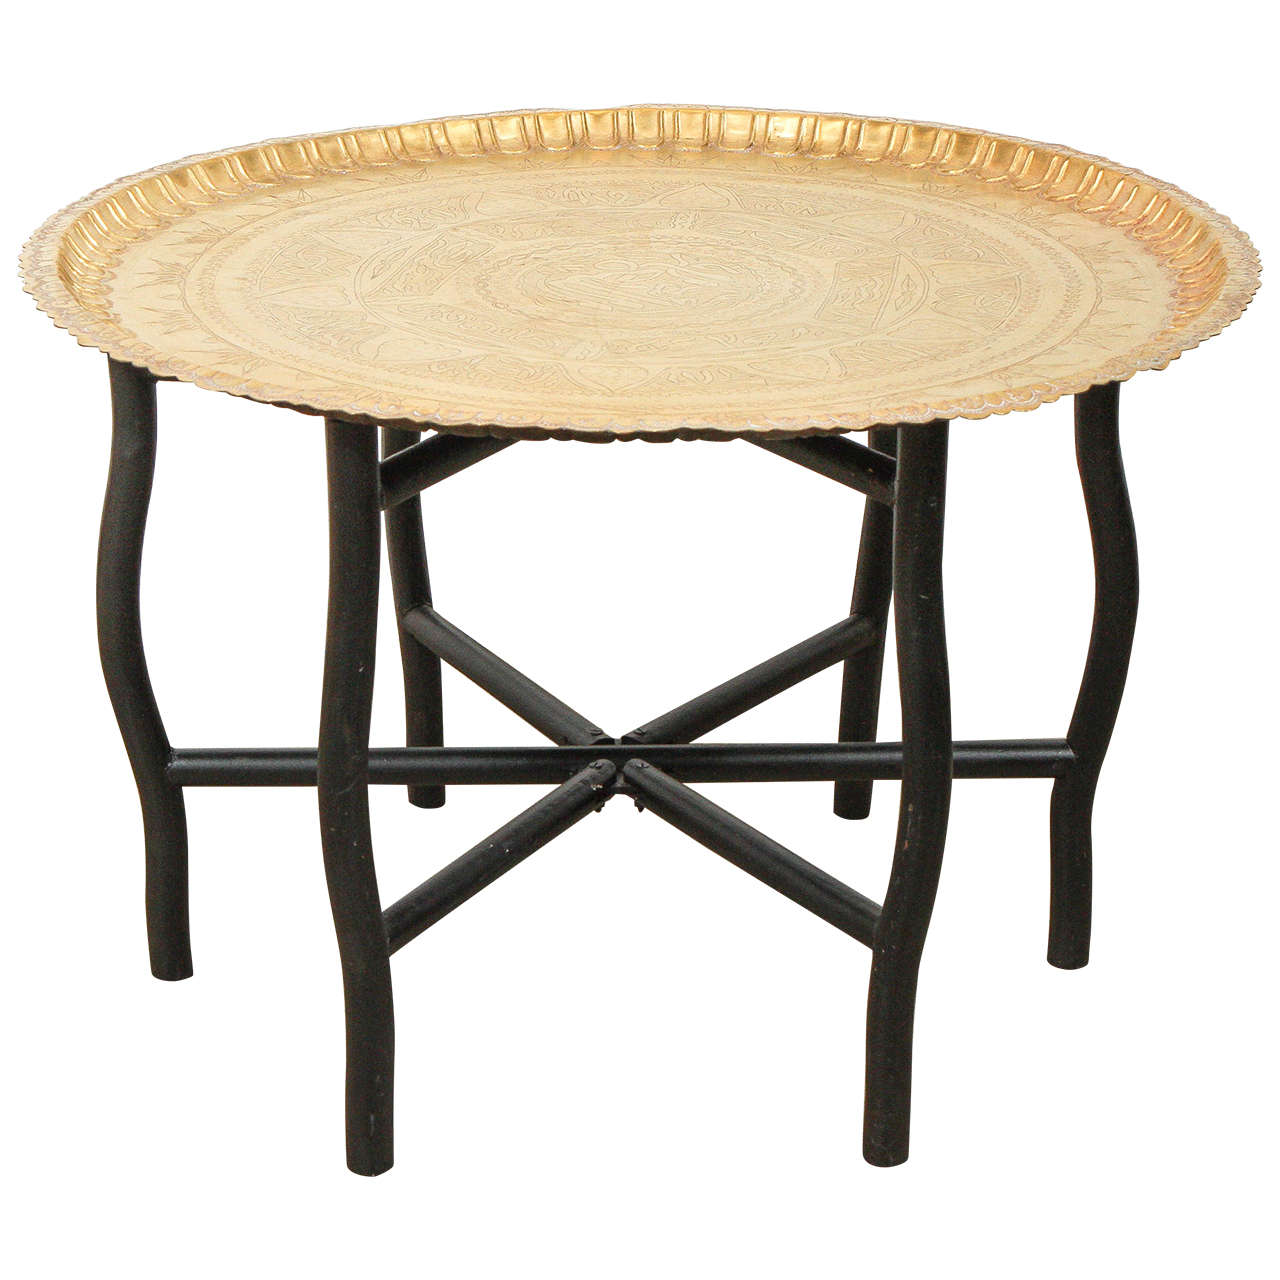 moroccan brass tray table on folding stand at 1stdibs. Black Bedroom Furniture Sets. Home Design Ideas